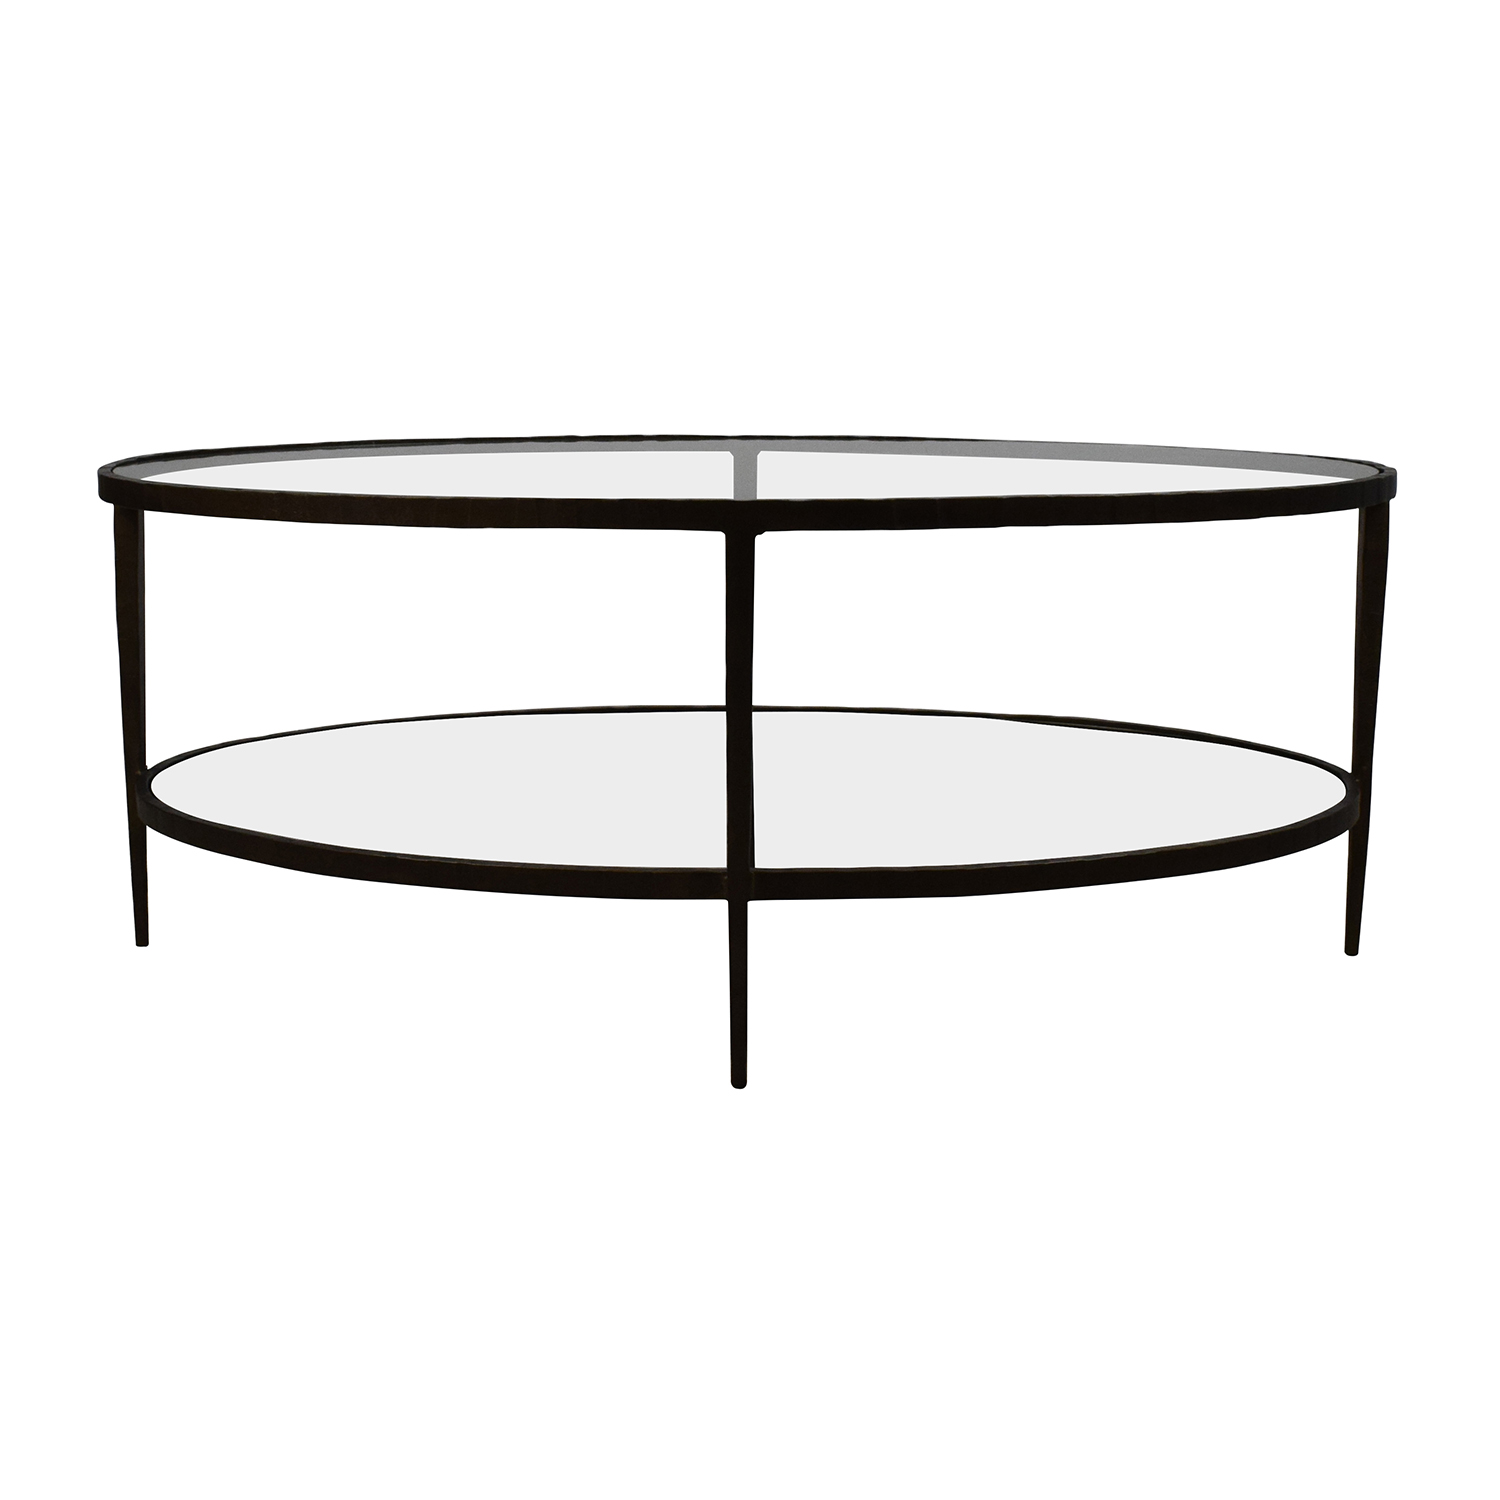 58% OFF West Elm West Elm Butler Stand & Mirrored Tray Tables